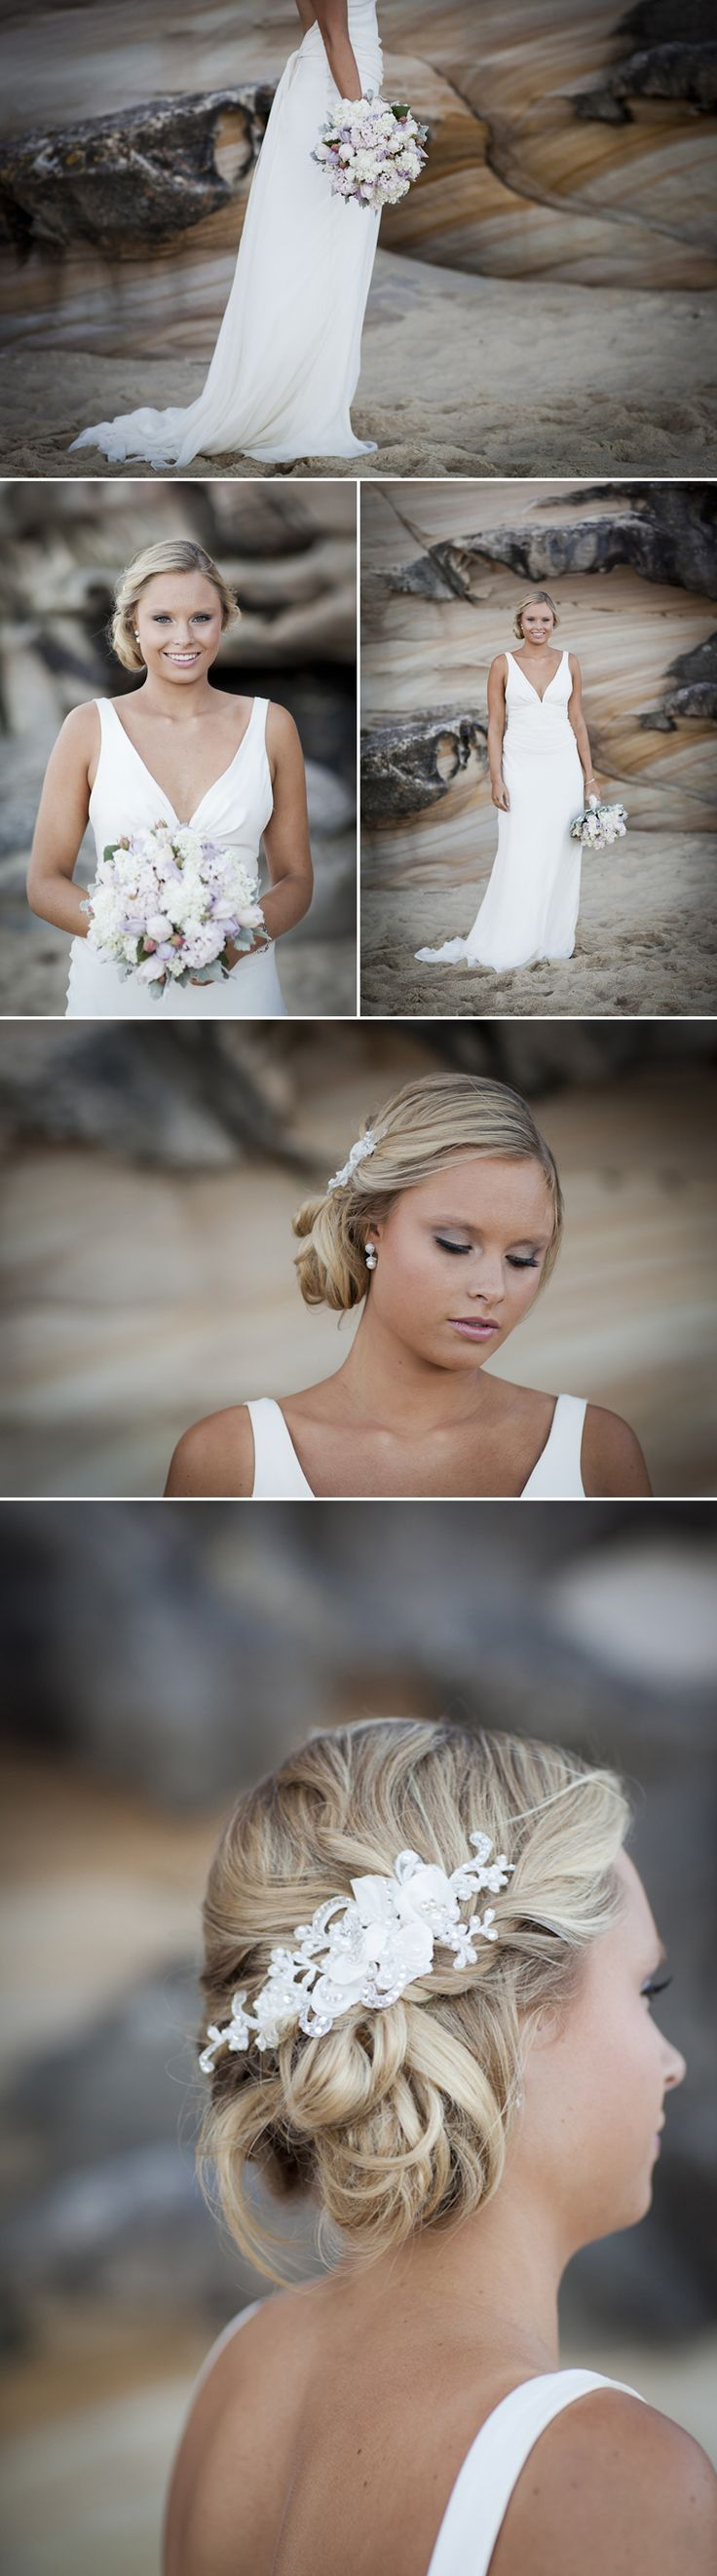 Sutherland Shire Weddding Photography | Say I Do Weddings Styled Shoot